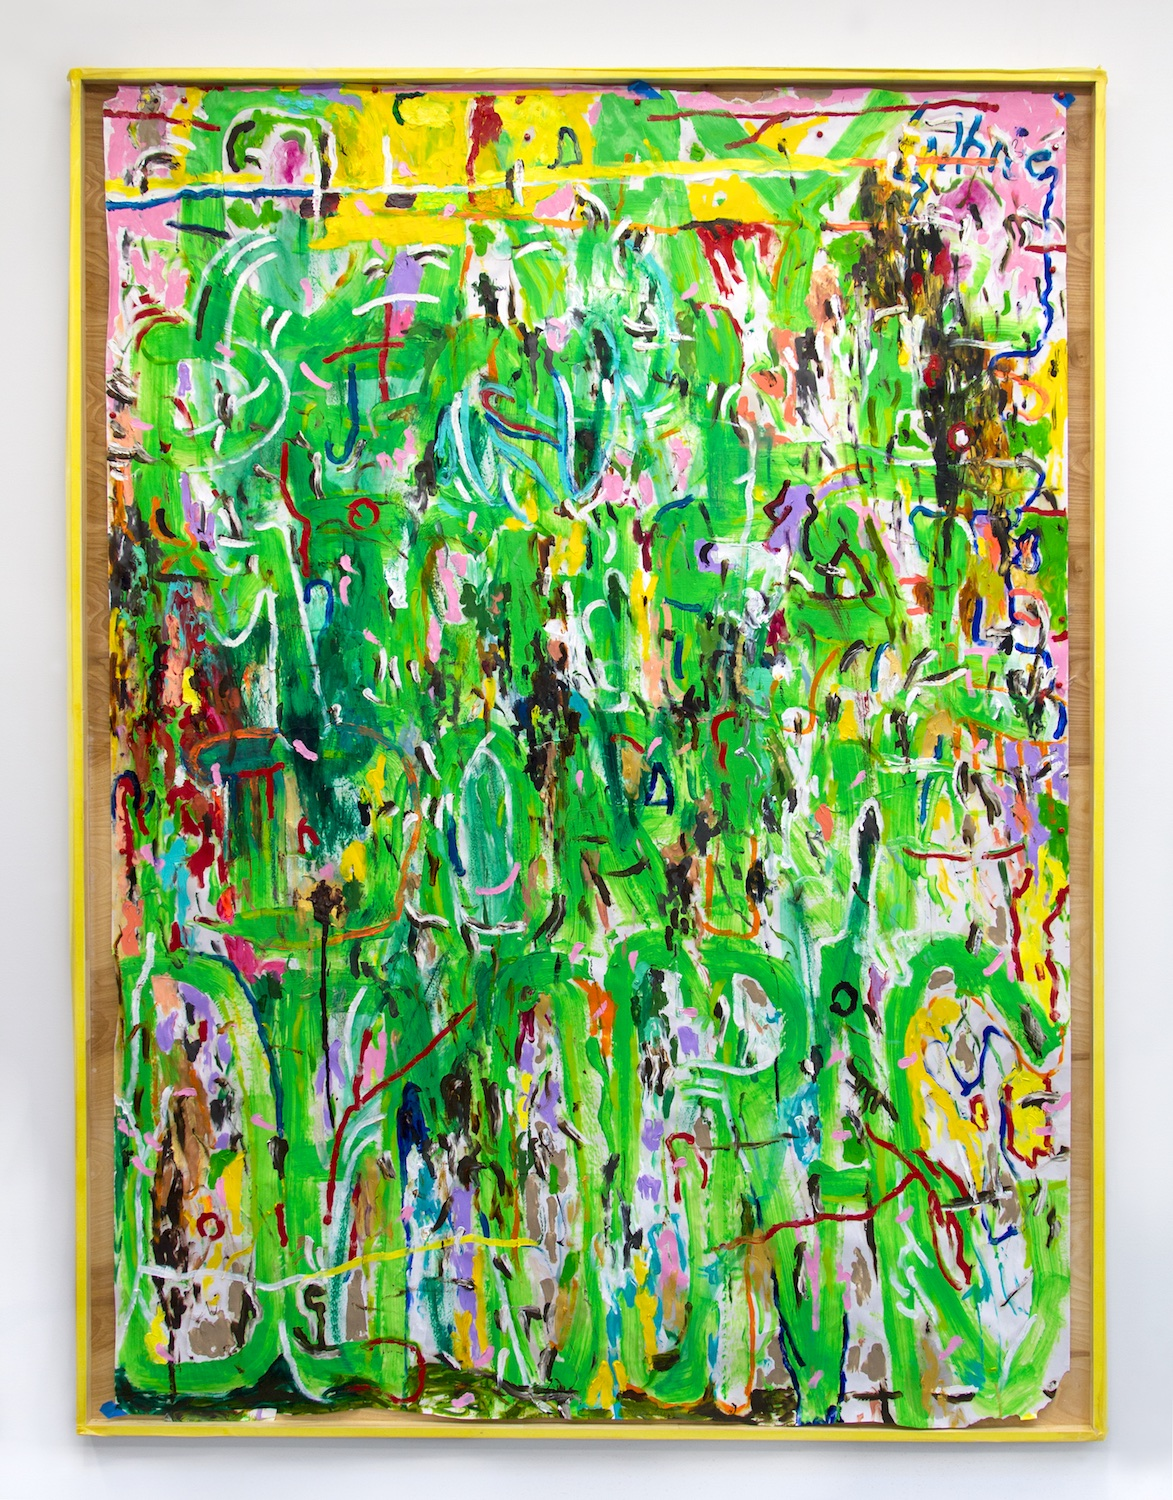 William Pope.L  Gray People are Michael Dorn Democrac or the Alternative Title  2015 Acrylic, oil, wooden frame 84h x 60w in WP009